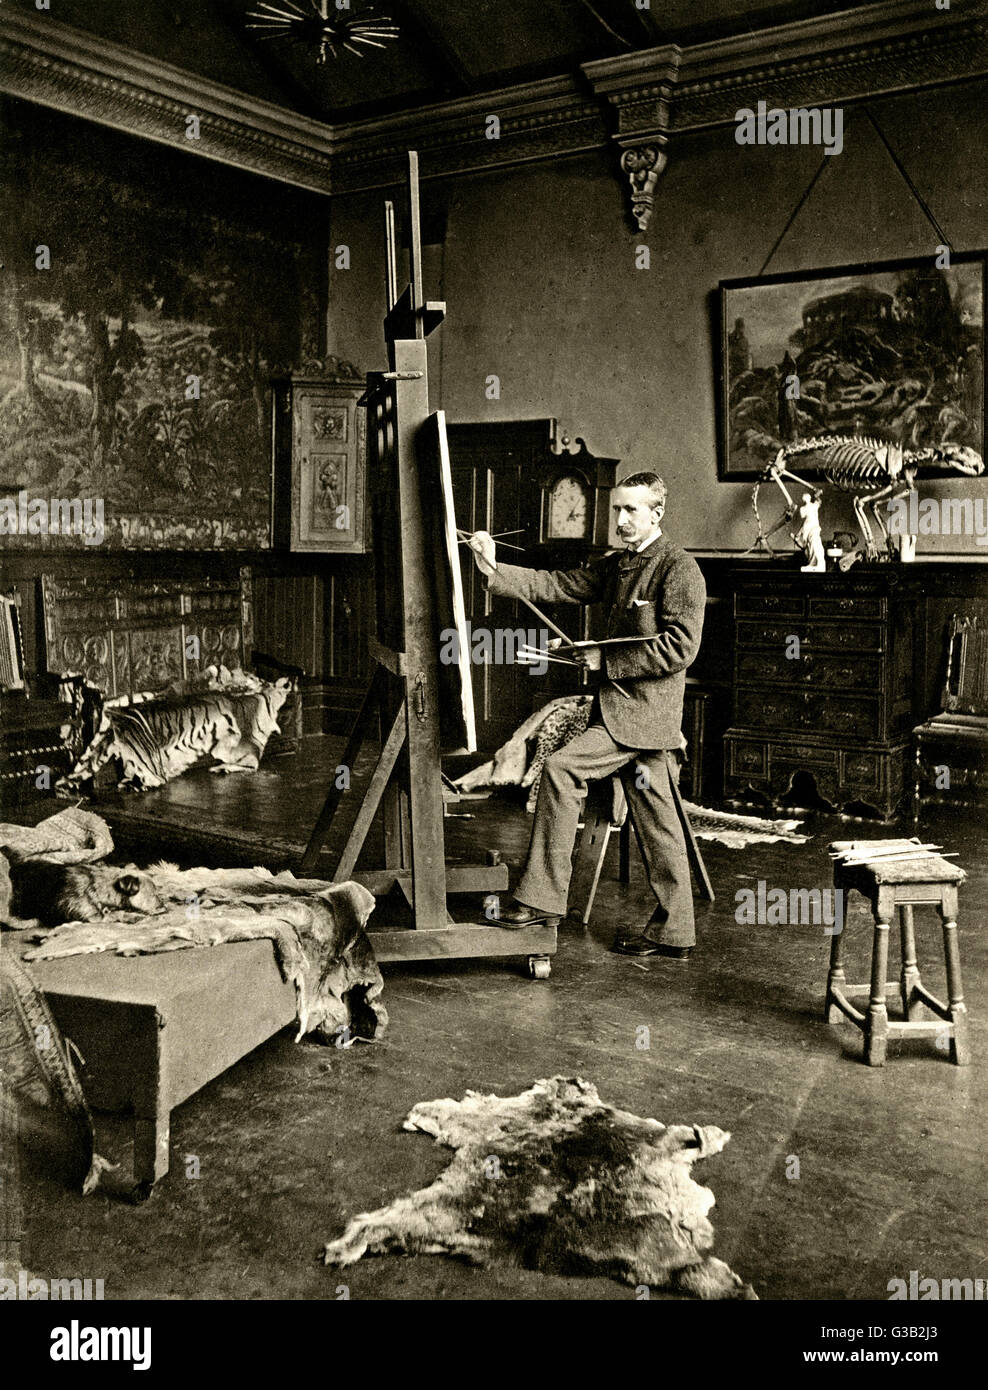 BRITON RIVIERE  Artist, photographed at work  in his studio       Date: 1840 - 1920 Stock Photo